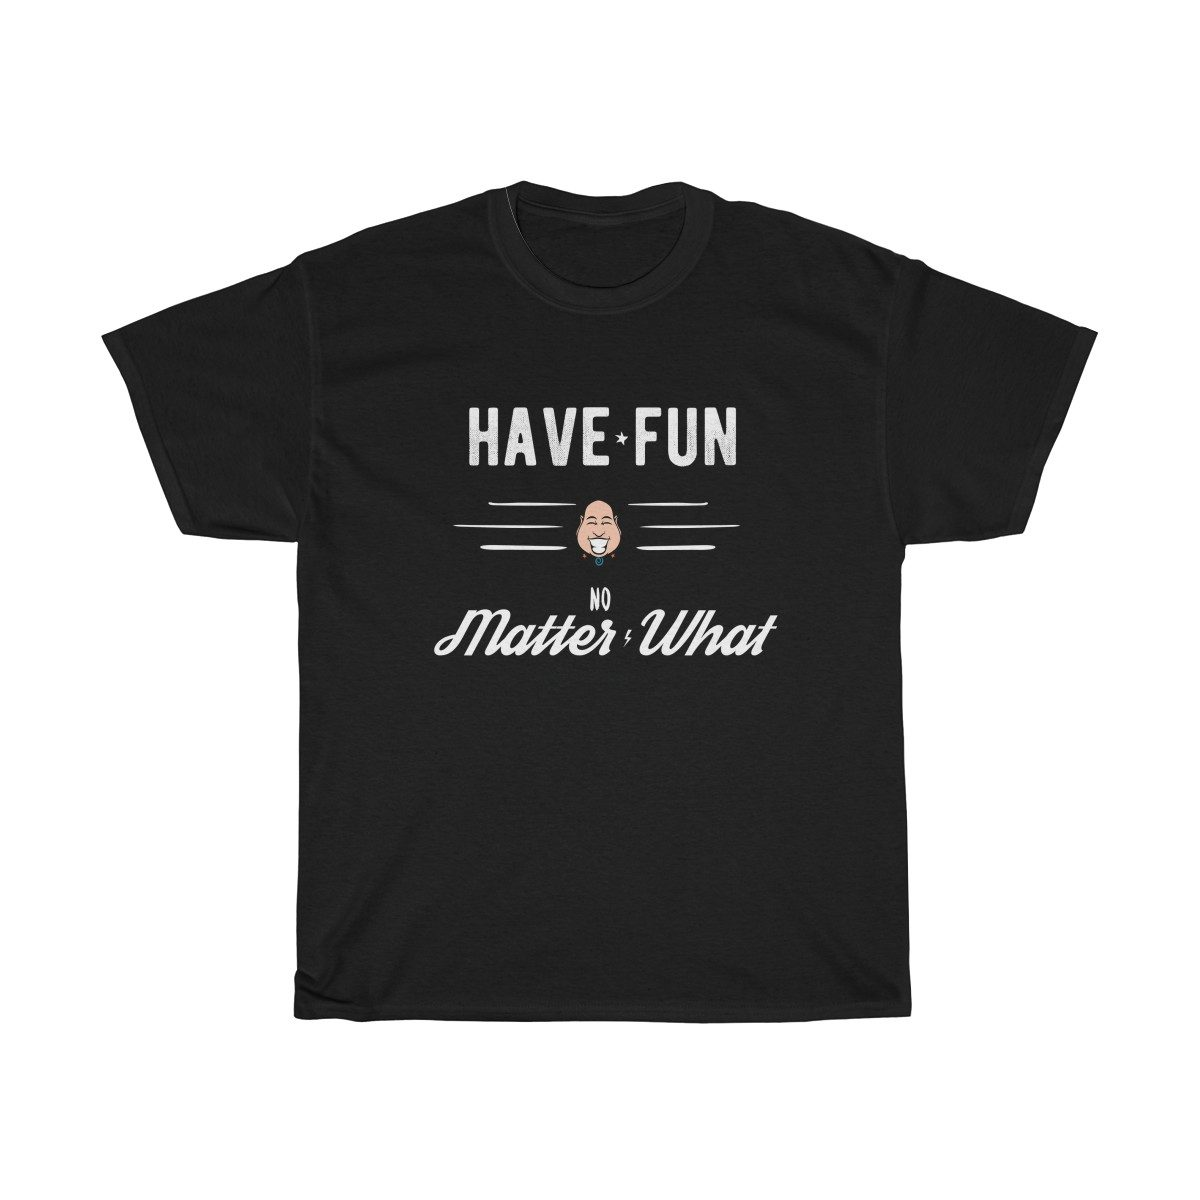 have-fun-tshirt-inspirational-quotes-cool-funny-black